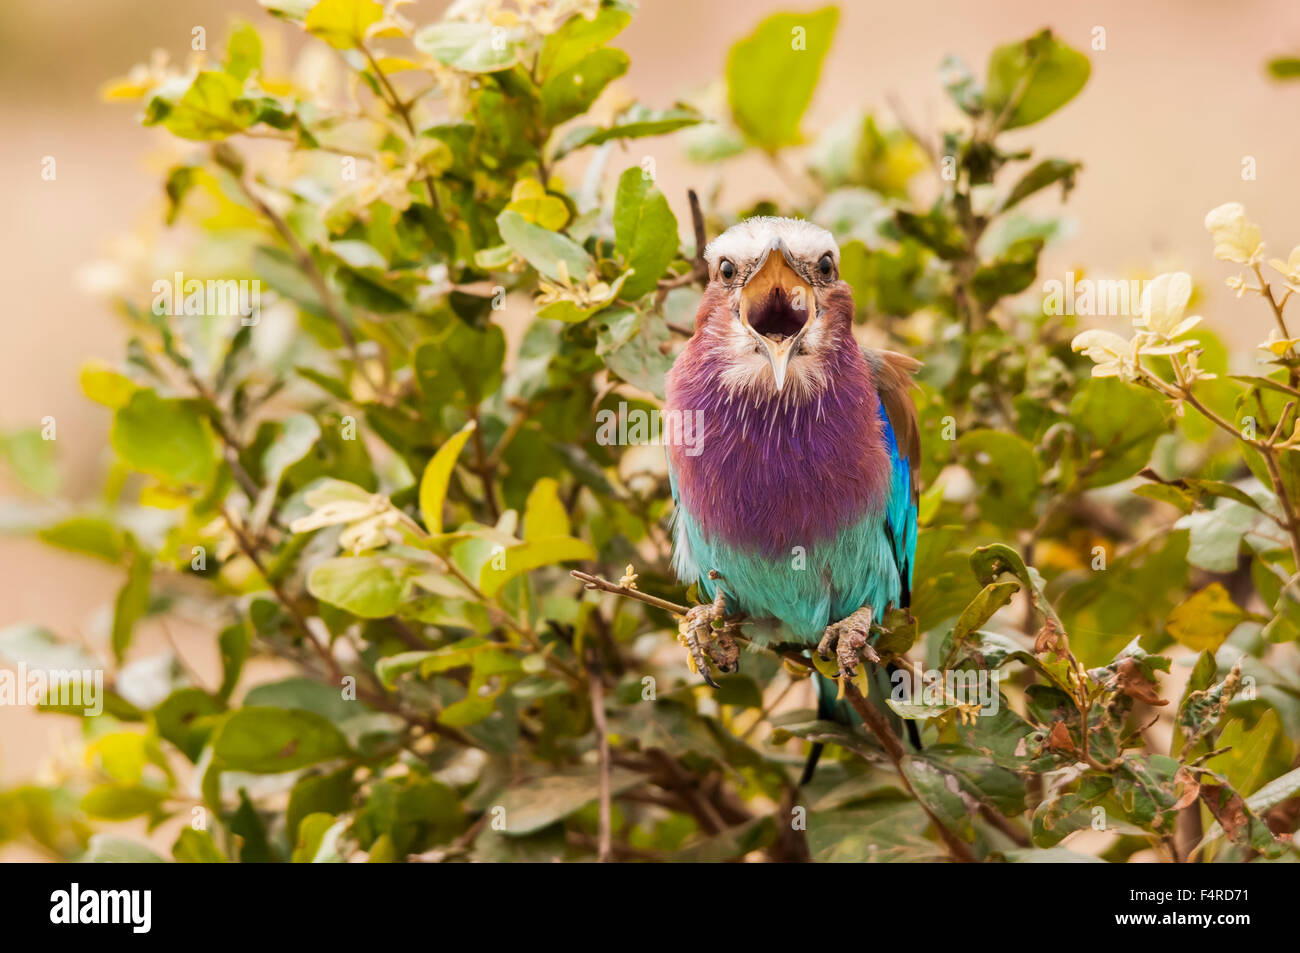 chirping colourful tropical bird - Stock Image